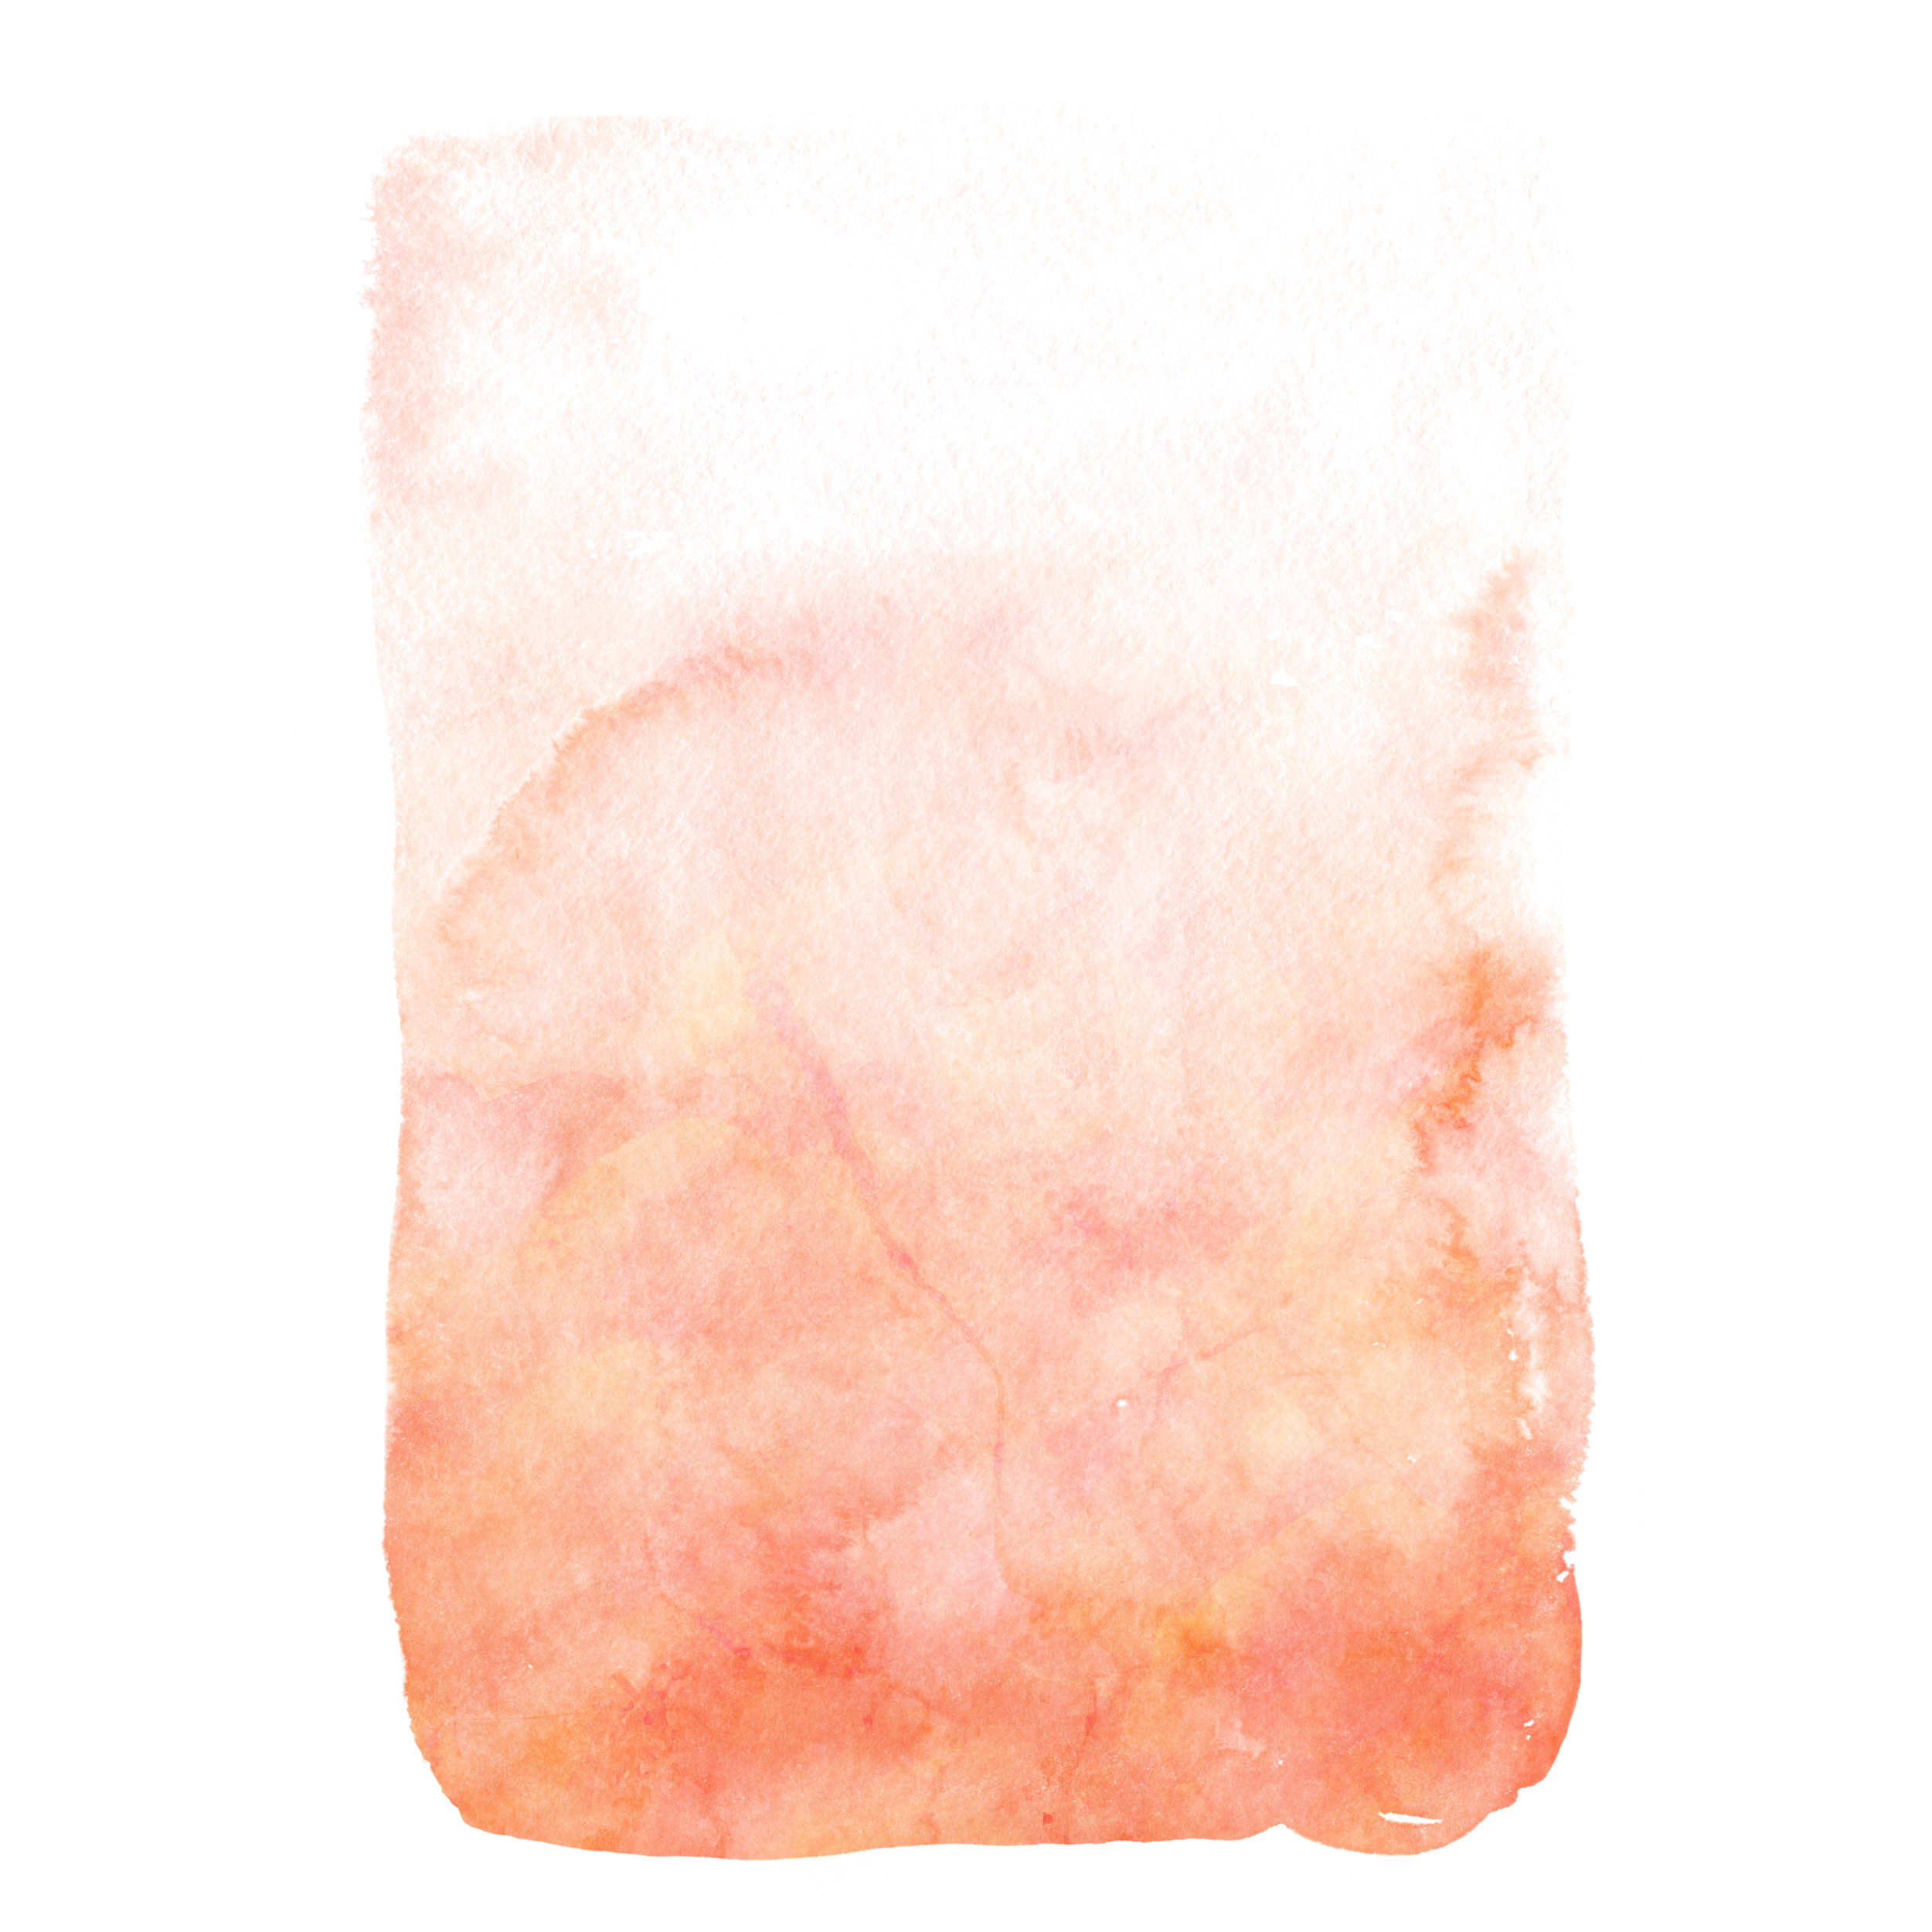 Watercolor coral png. Orange free brush stroke